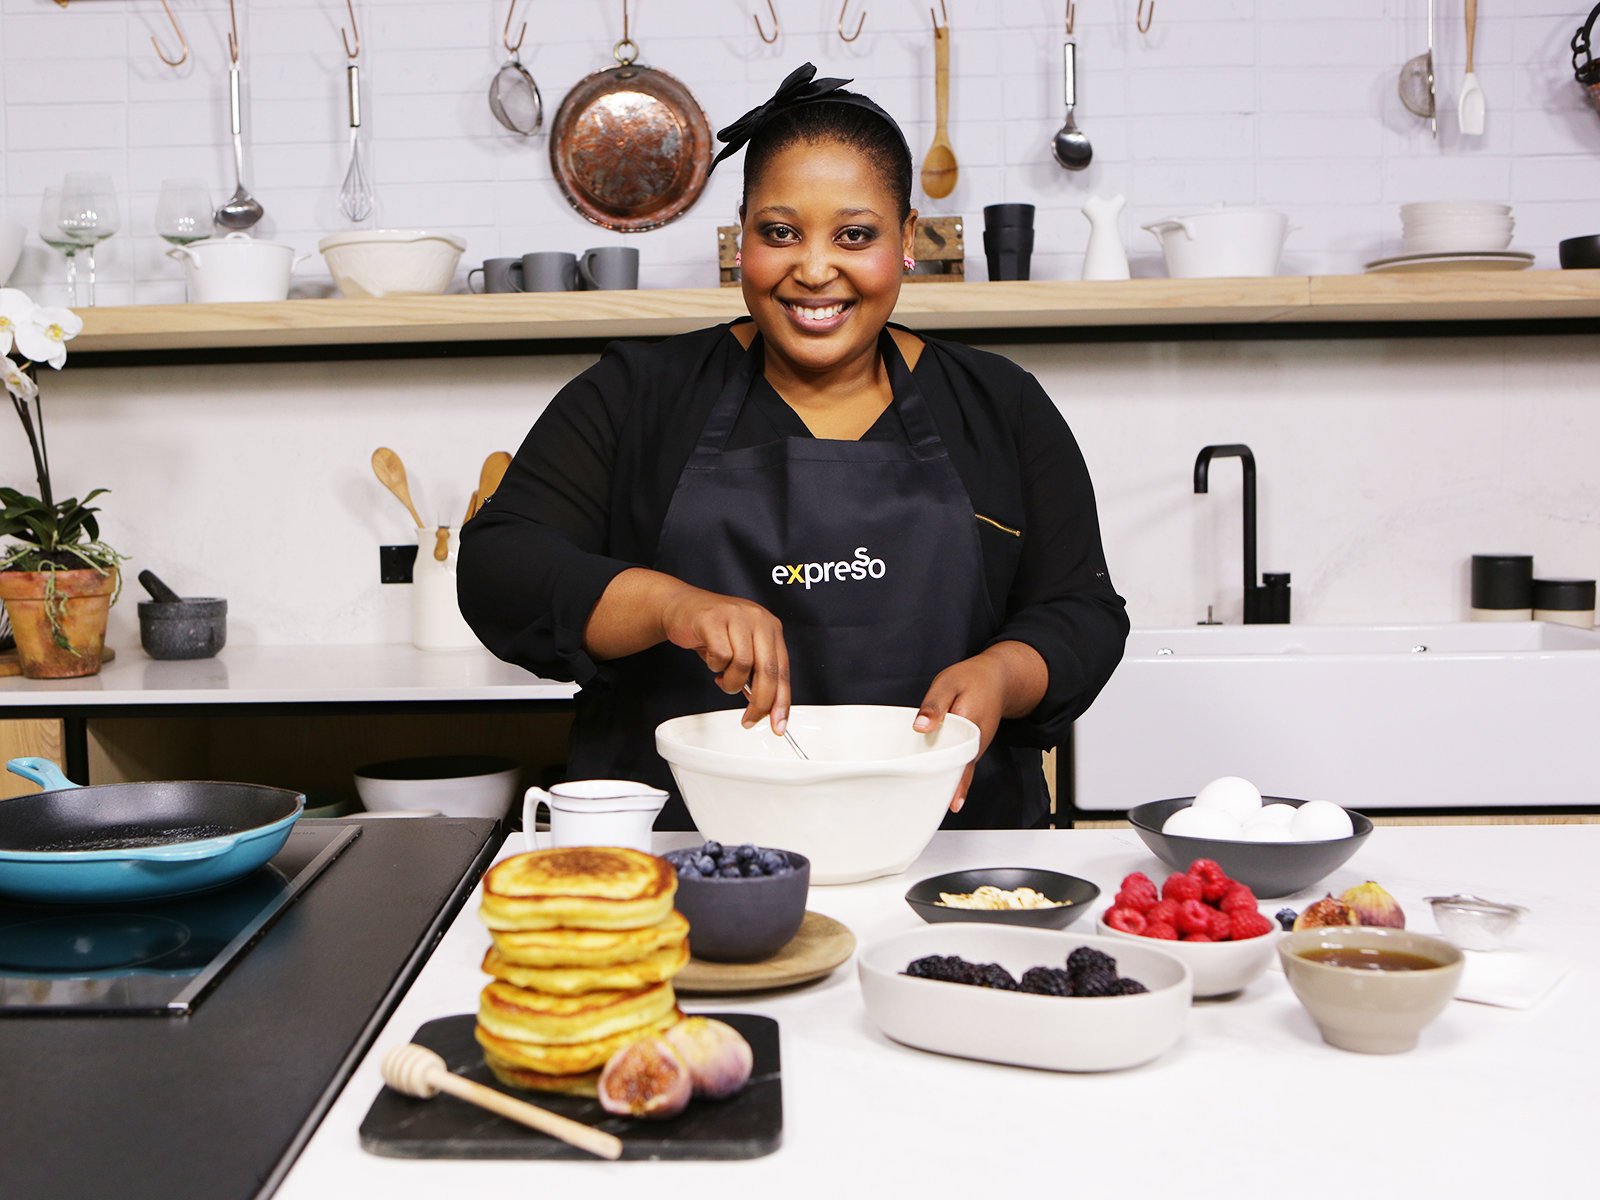 Top South African Chefs Speak Out About Representation in the Kitchen